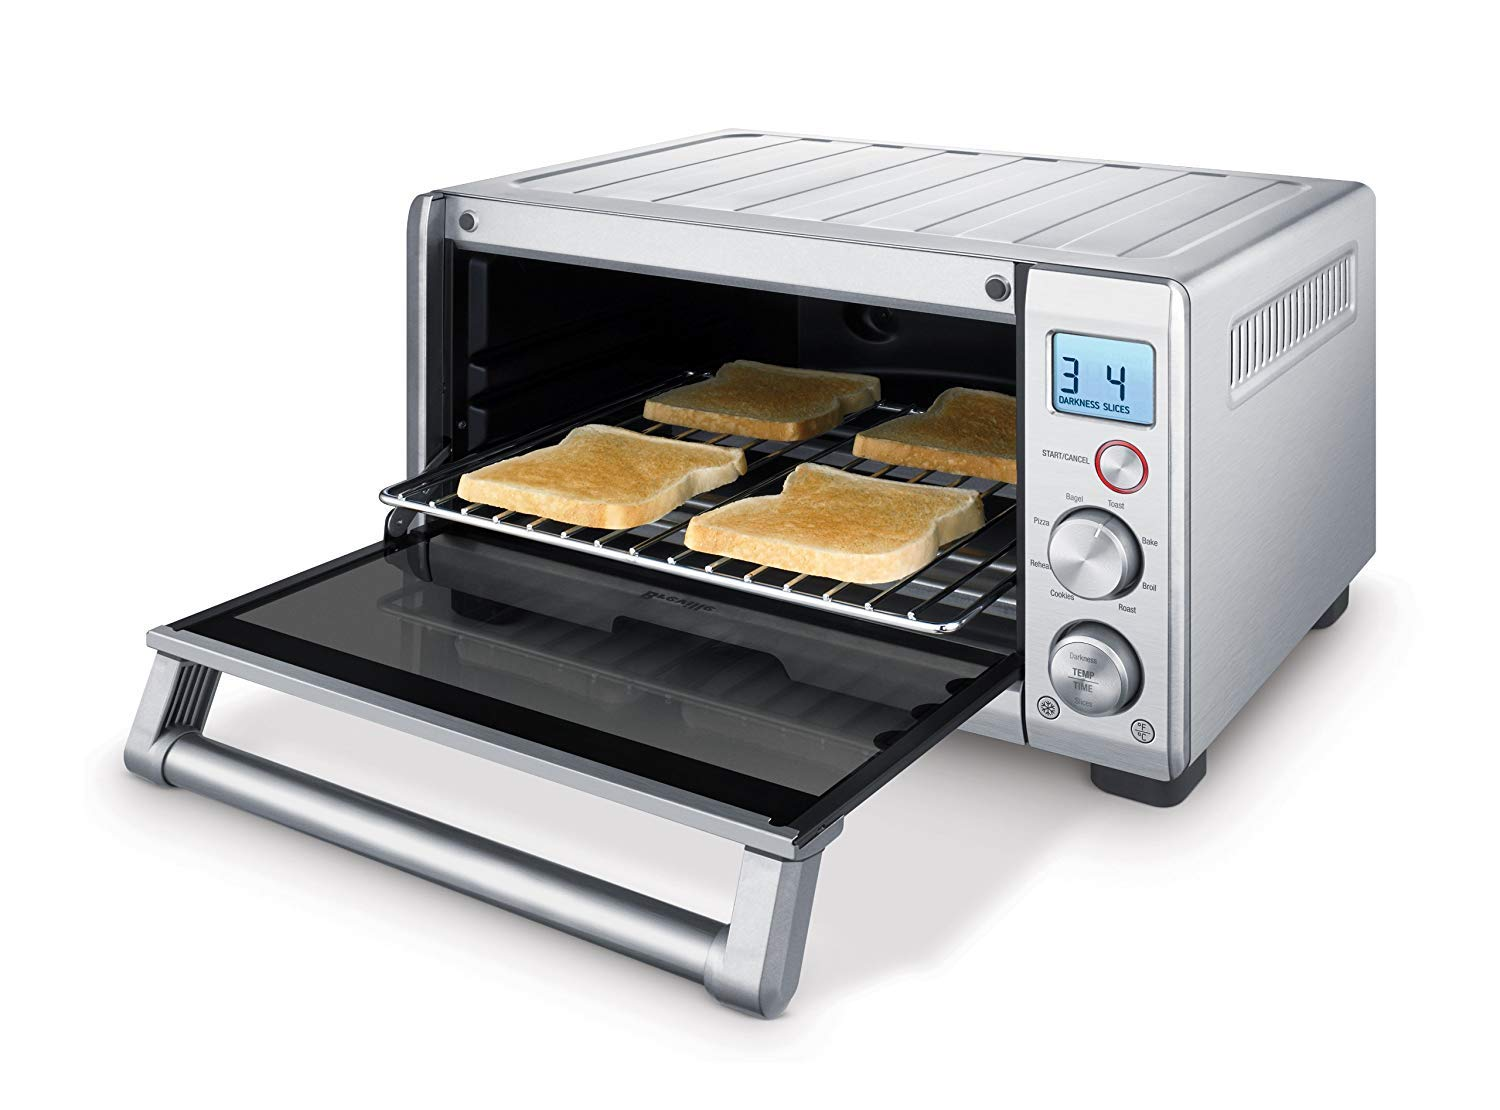 Breville the Compact Smart Oven 1800W Convection Toaster Oven - BOV650XL by Breville (Image #2)